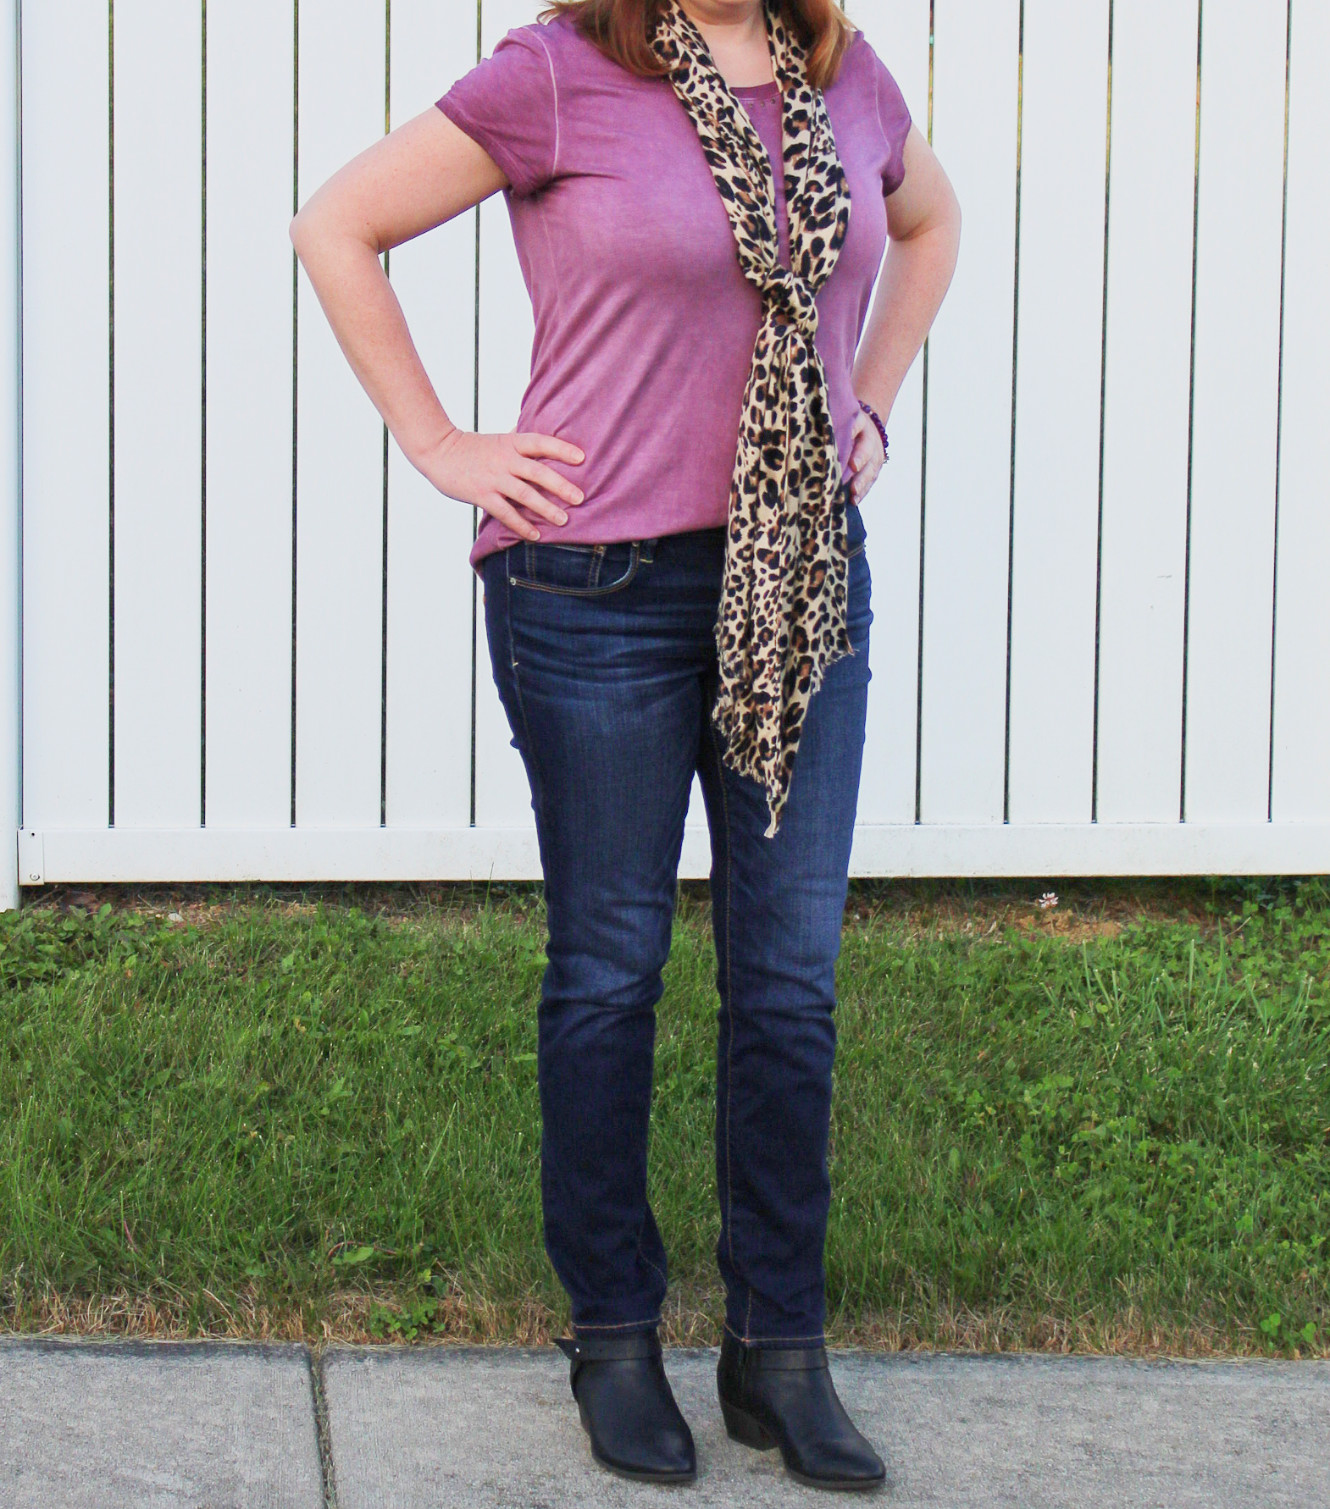 Leopard Print Scarf And Purple Tee Close Up